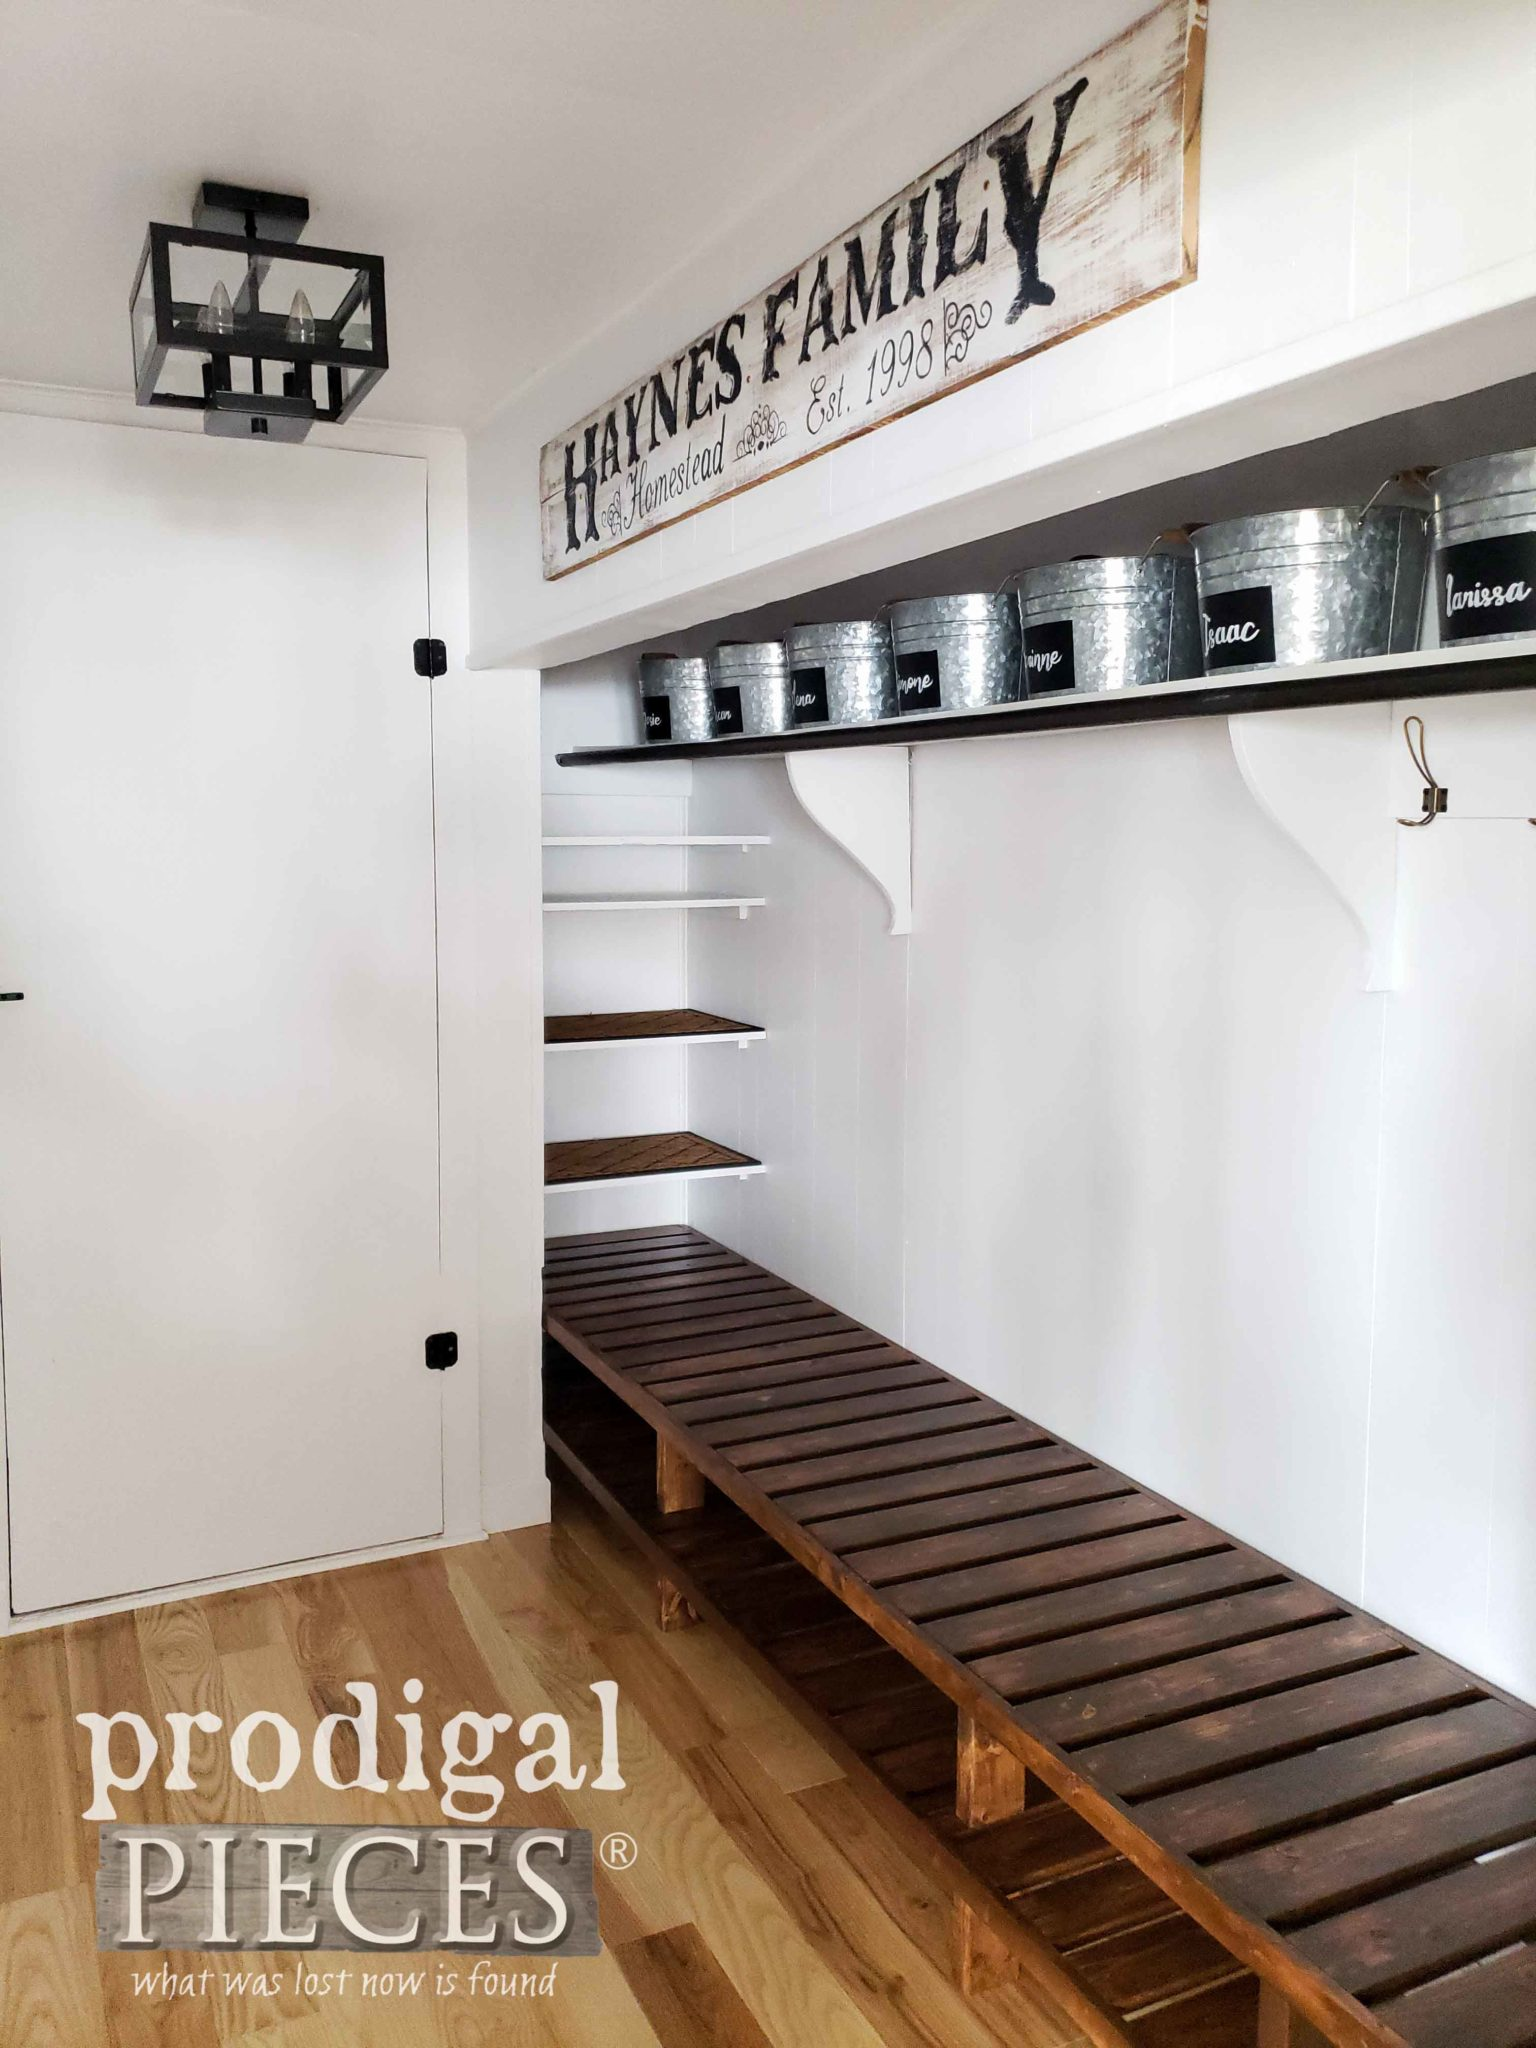 Farmhouse Style Mudroom Updated with Hardwood Flooring and DIY Shoe Storage by Larissa of Prodigal Pieces | prodigalpieces.com #prodigalpieces #diy #home #storage #homeimprovement #homedecor #farmhouse